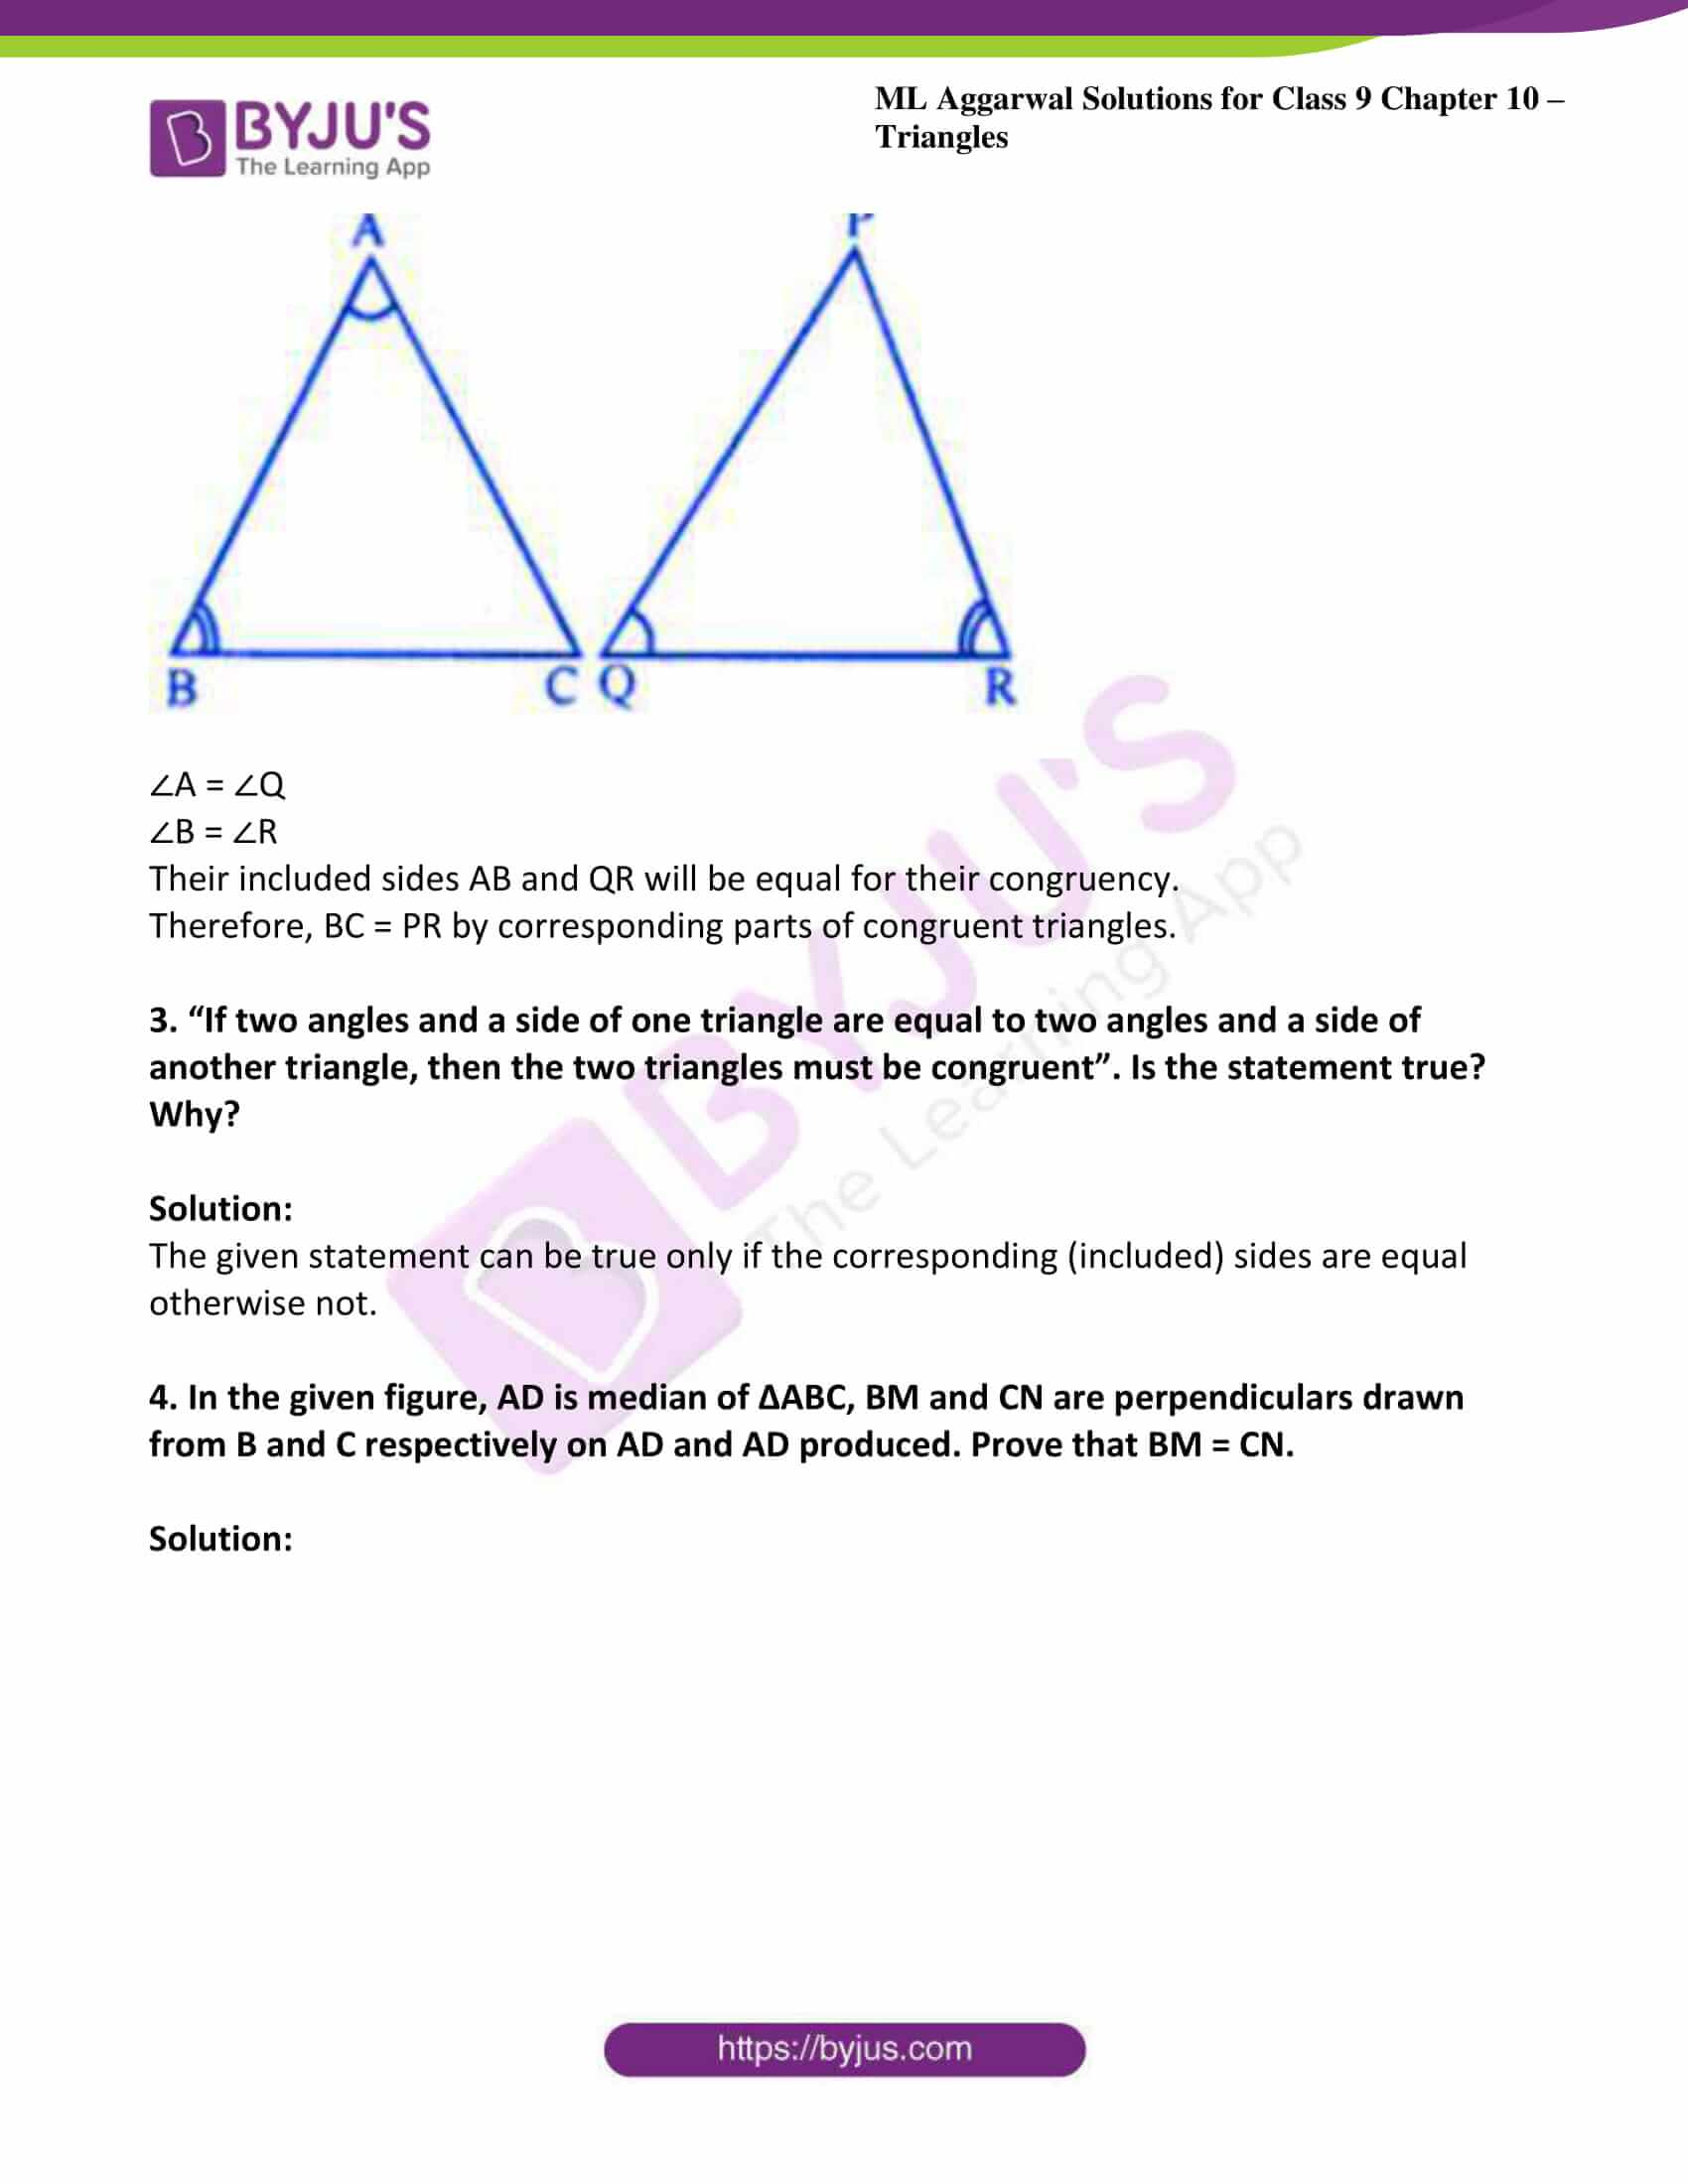 ml aggarwal solutions for class 9 maths chapter 10 10